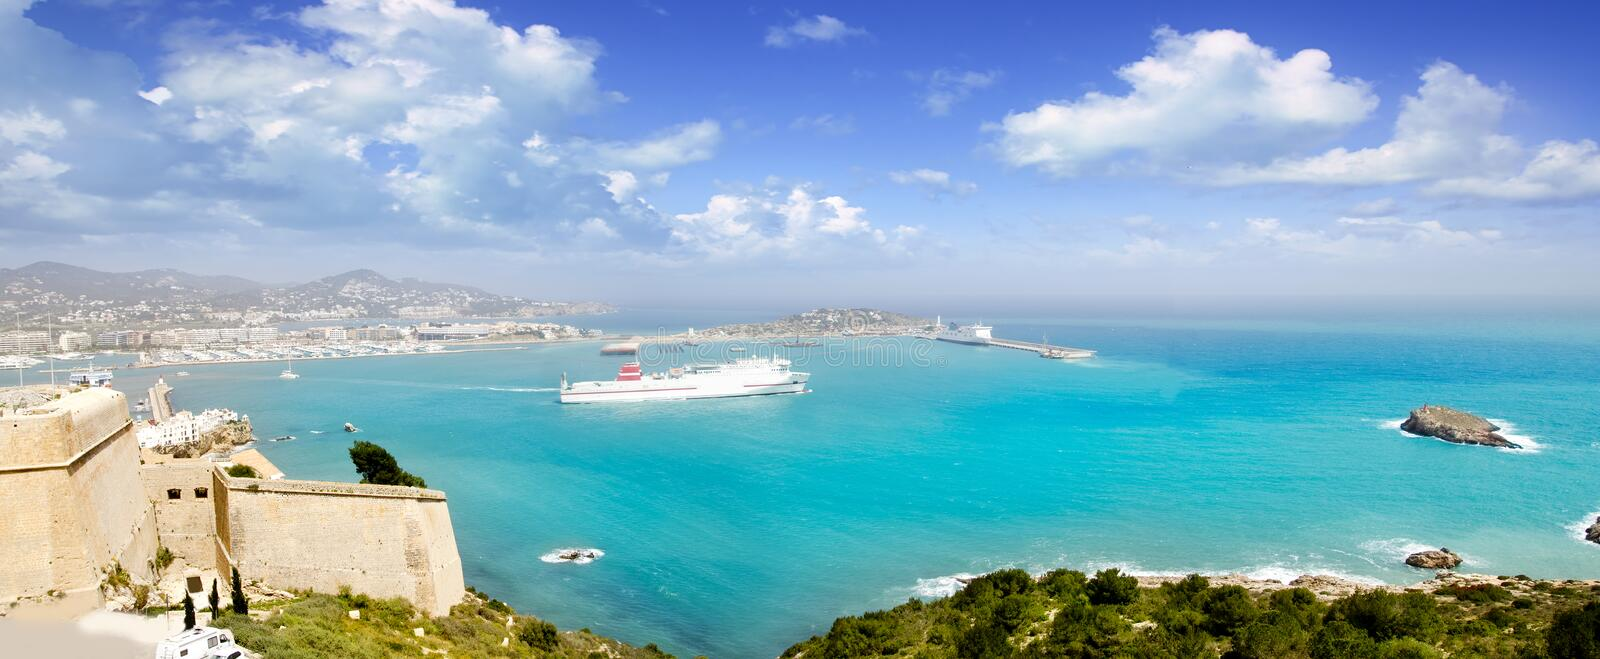 Ibiza Panoramic View From Castle Balearic Islands Royalty Free Stock Photos